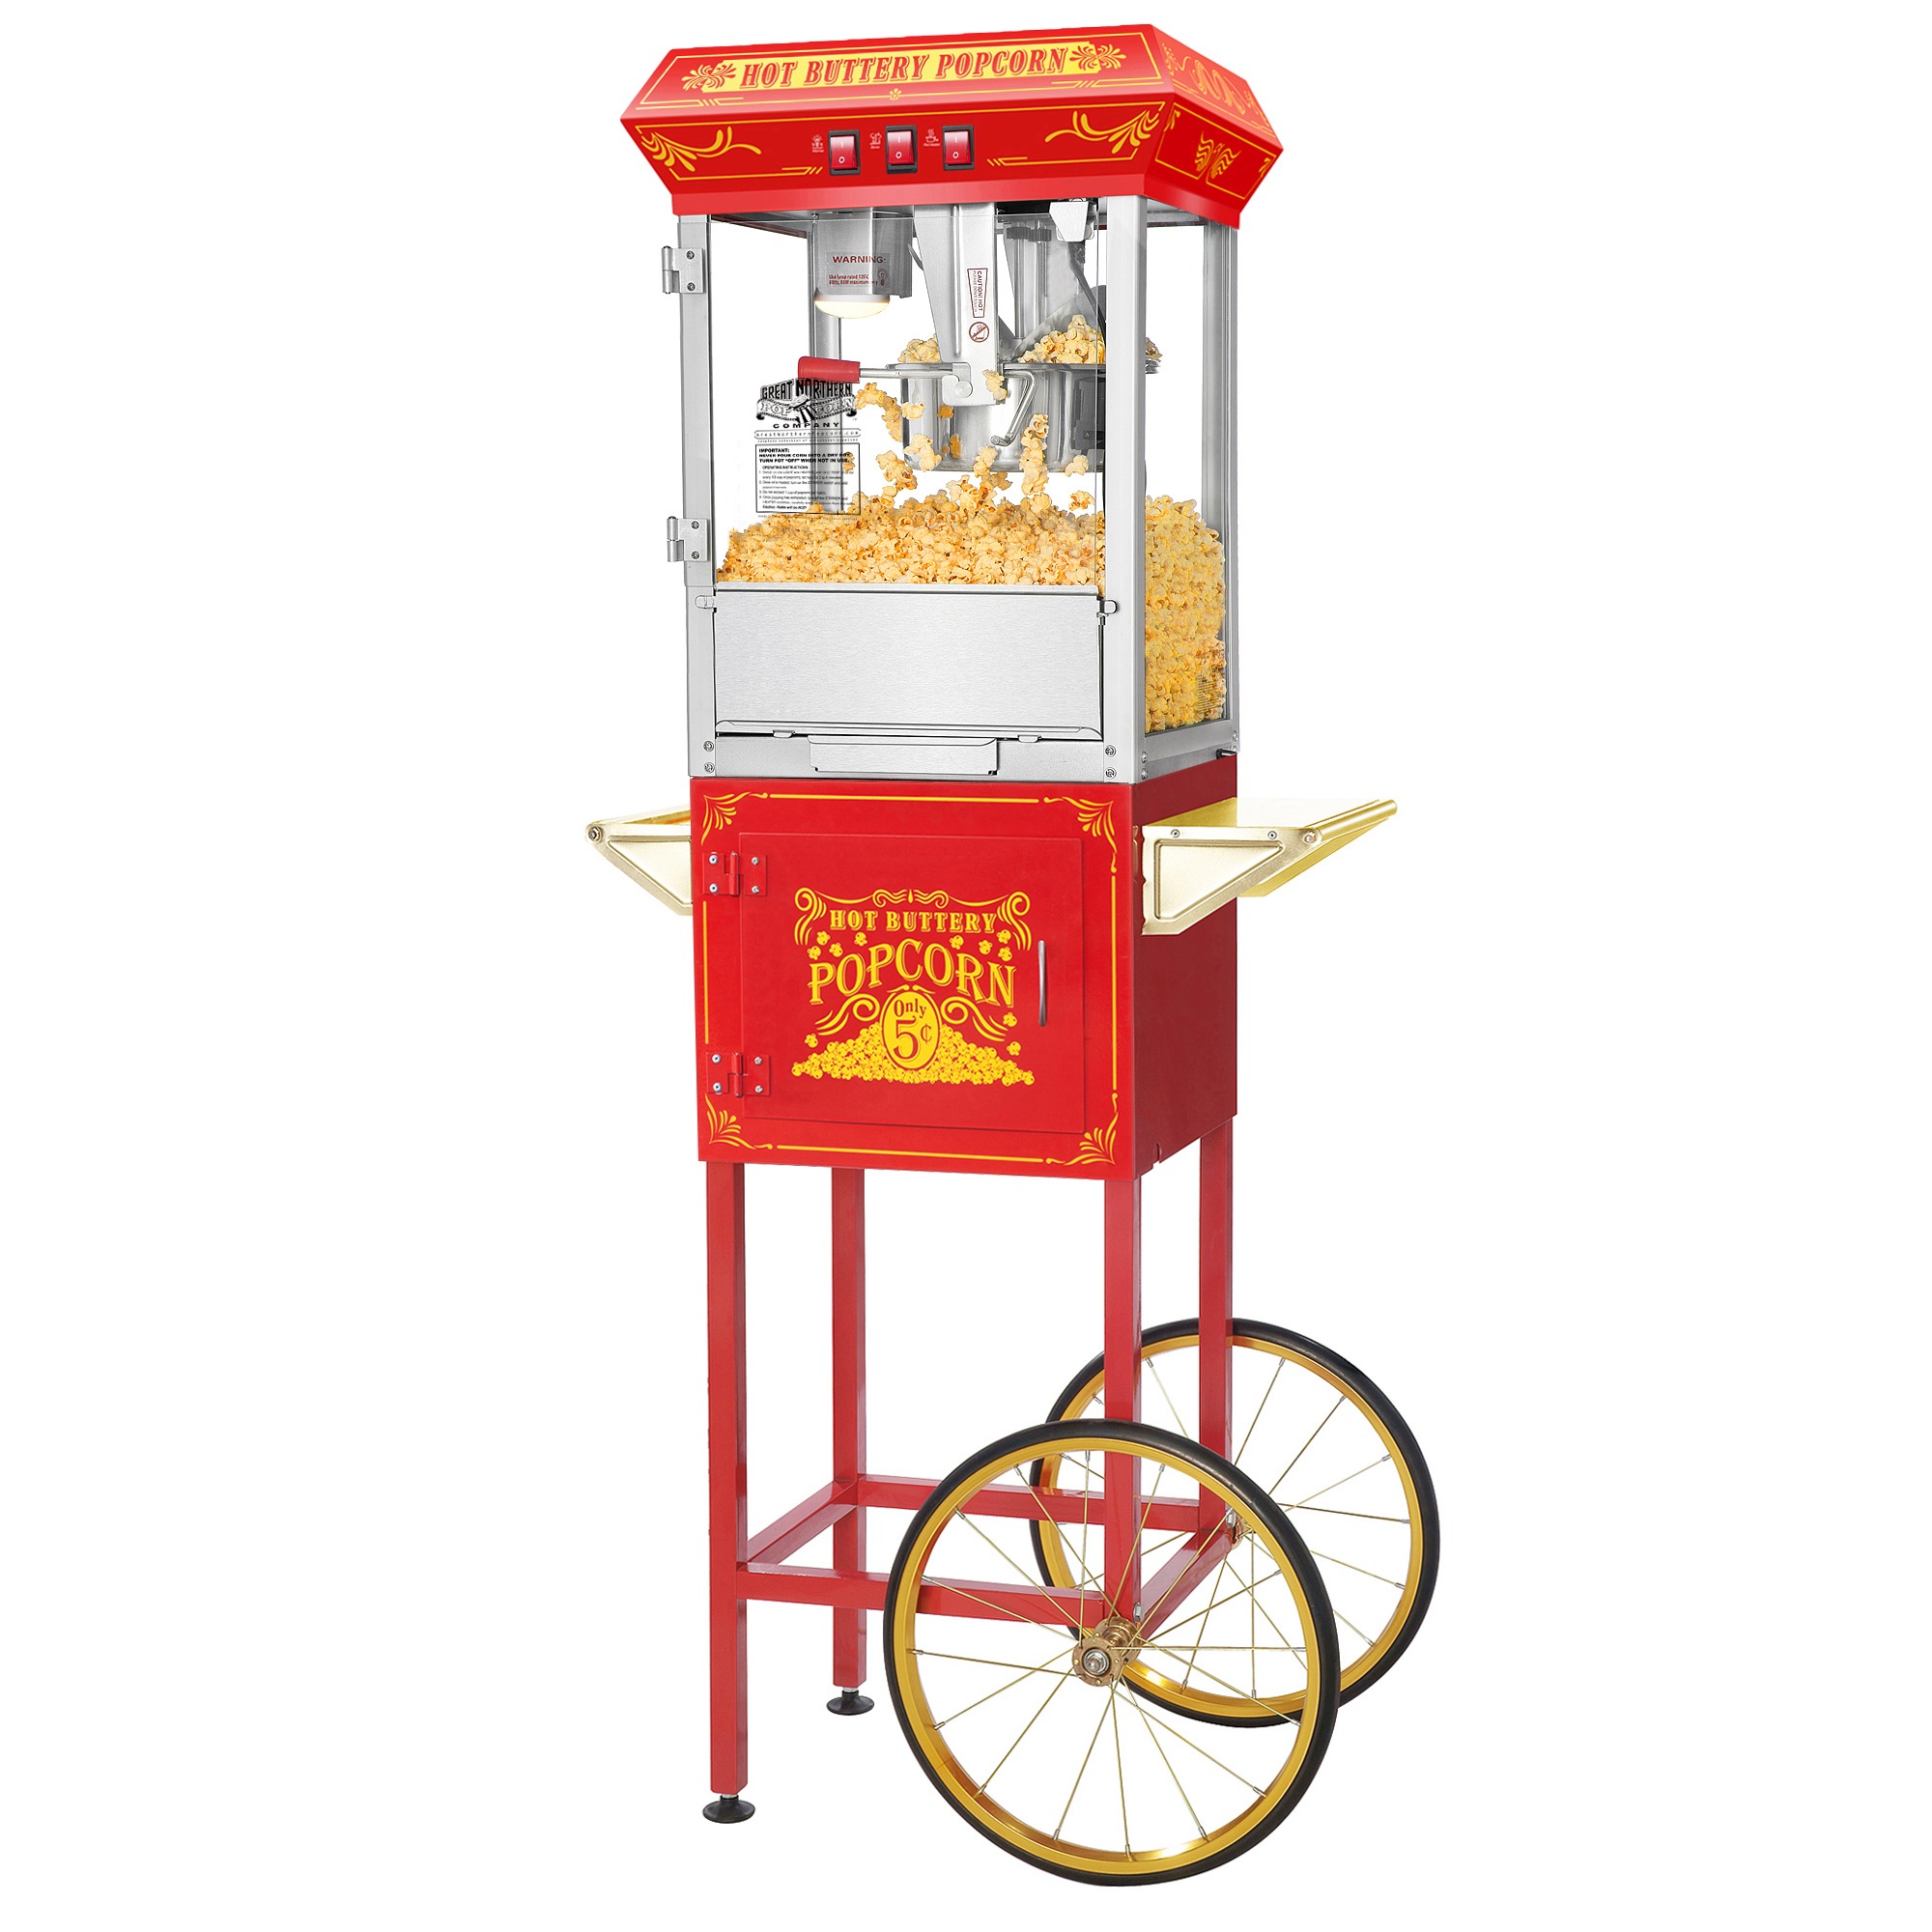 8oz Pop Corn Machine & Stand